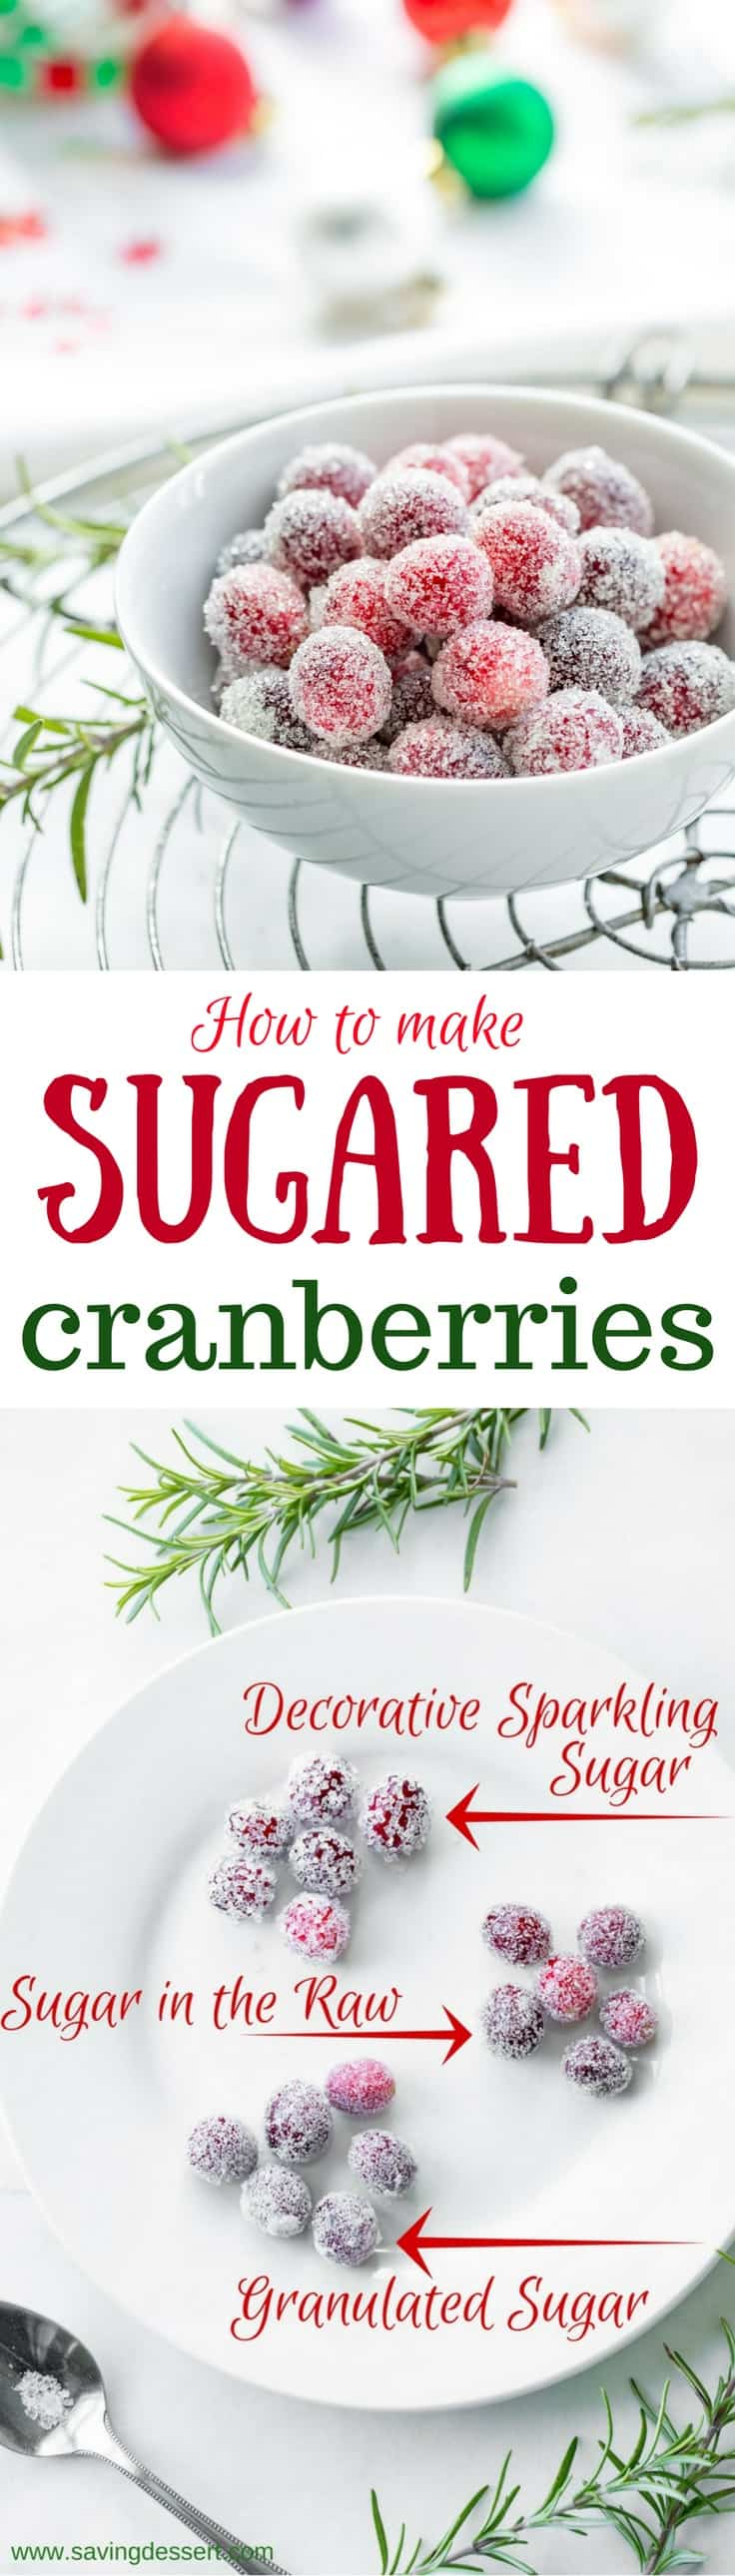 Quick and easy to make, and fabulously festive, Sugared Cranberries add that something special to your holiday recipes. Perfect as a tangy-tart snack, or an edible garnish on cakes, pies, cupcakes, quick breads, and even a holiday cocktail. www.savingdessert.com #savingroomfordessert #cranberry #garnish #sugaredcranberries